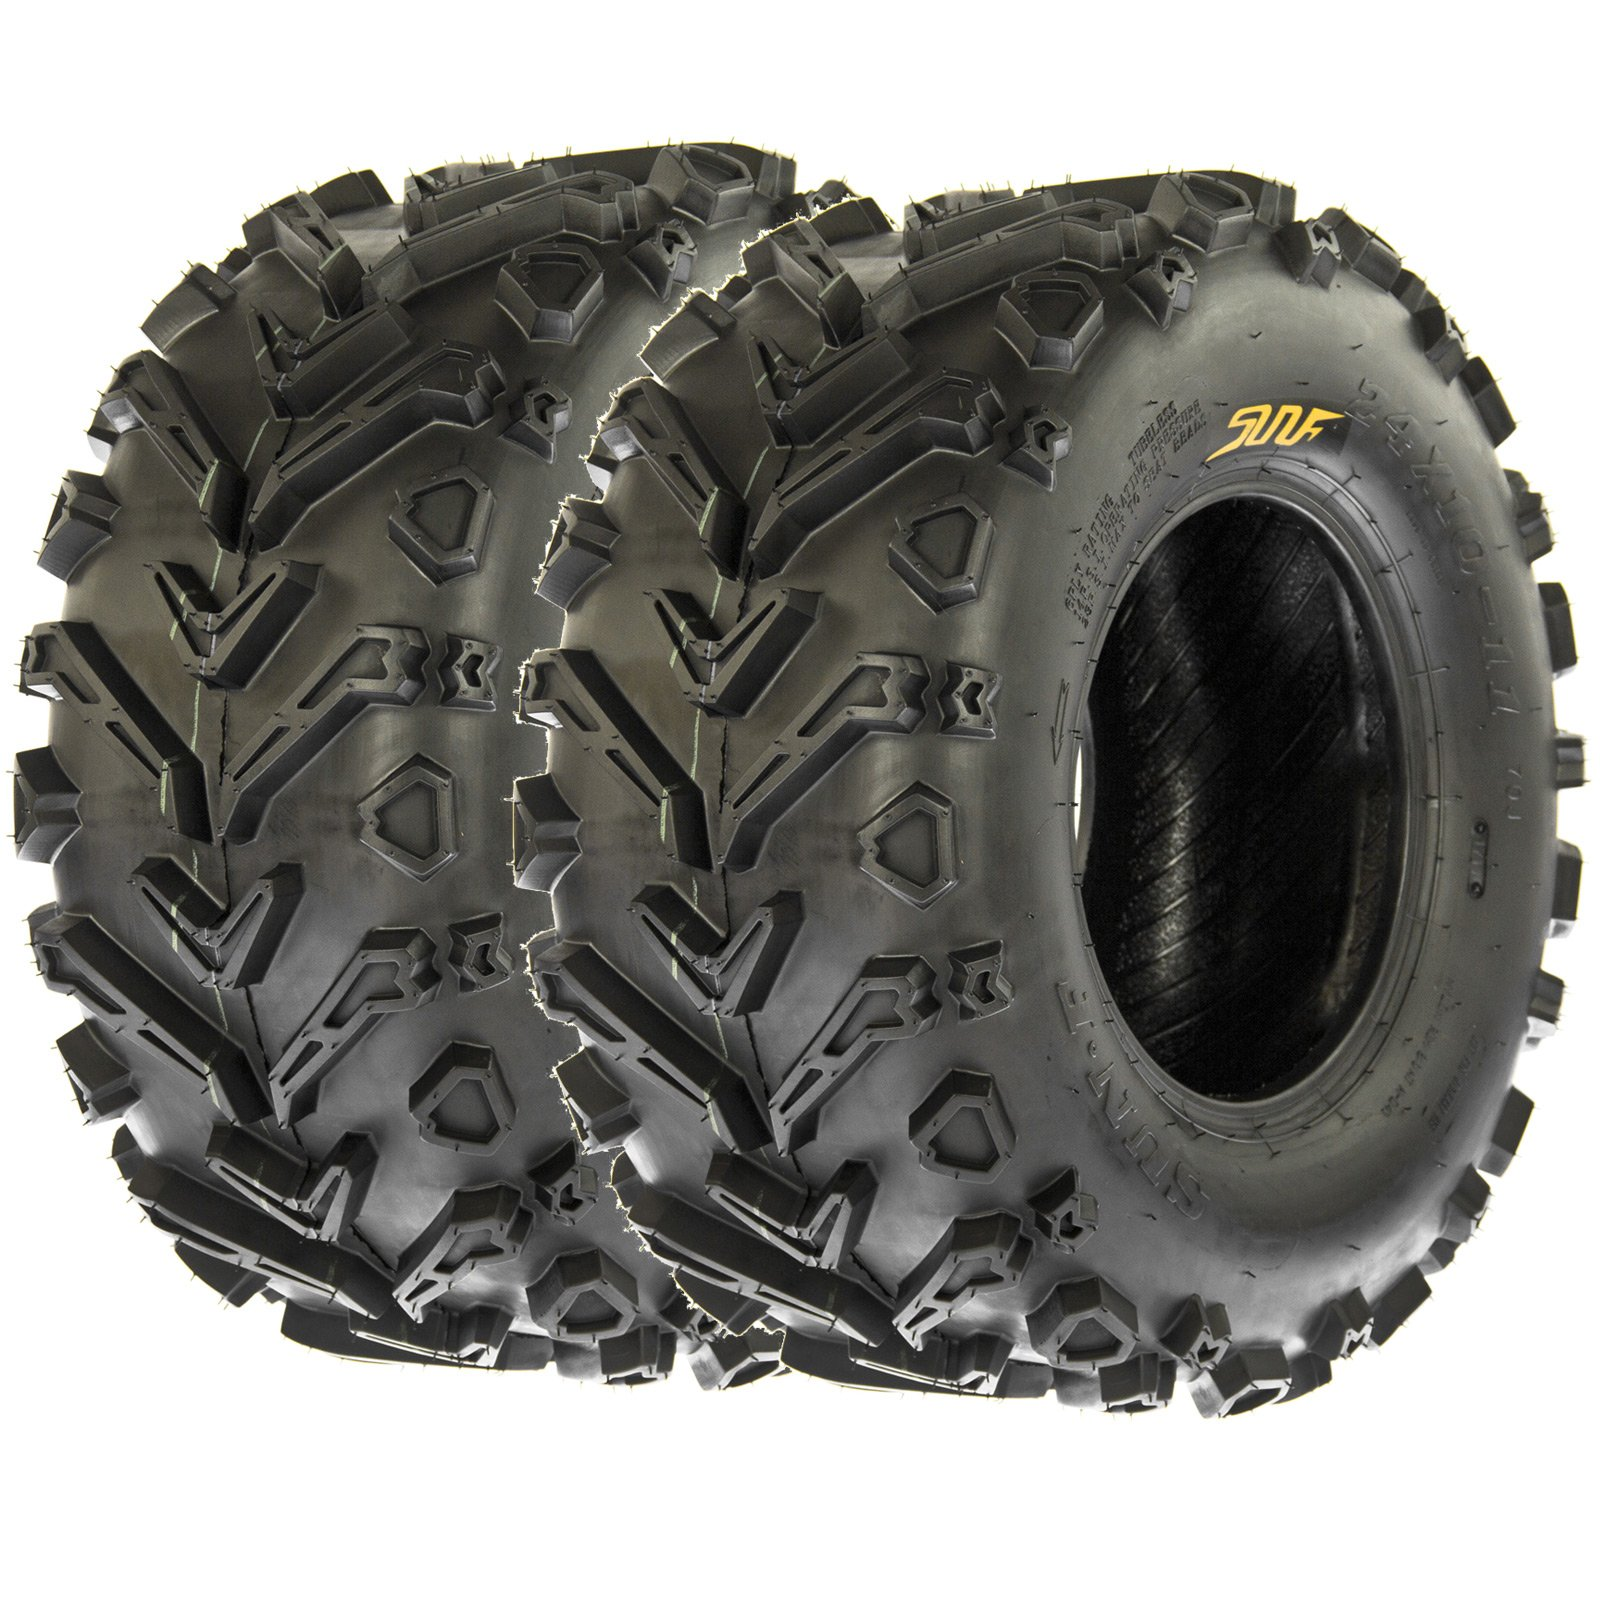 SunF 25x10-12 25x10x12 All Terrain Mud ATV UTV Tires 6 PR A041 (Set pair of 2)